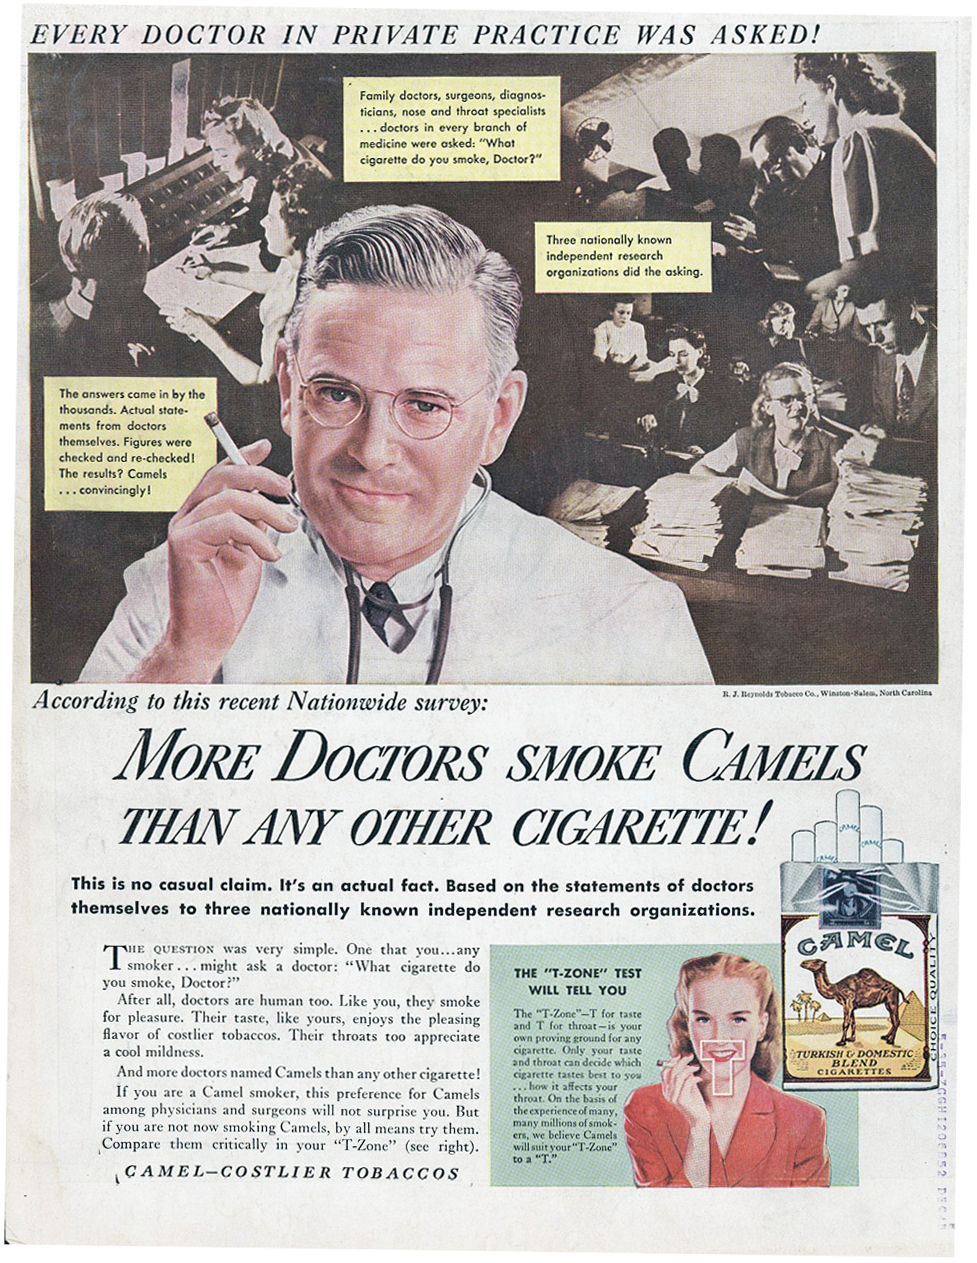 30 Outrageous Vintage Cigarette Ads Claimed That More Doctors Smoke Camels Than Any Other Everyday